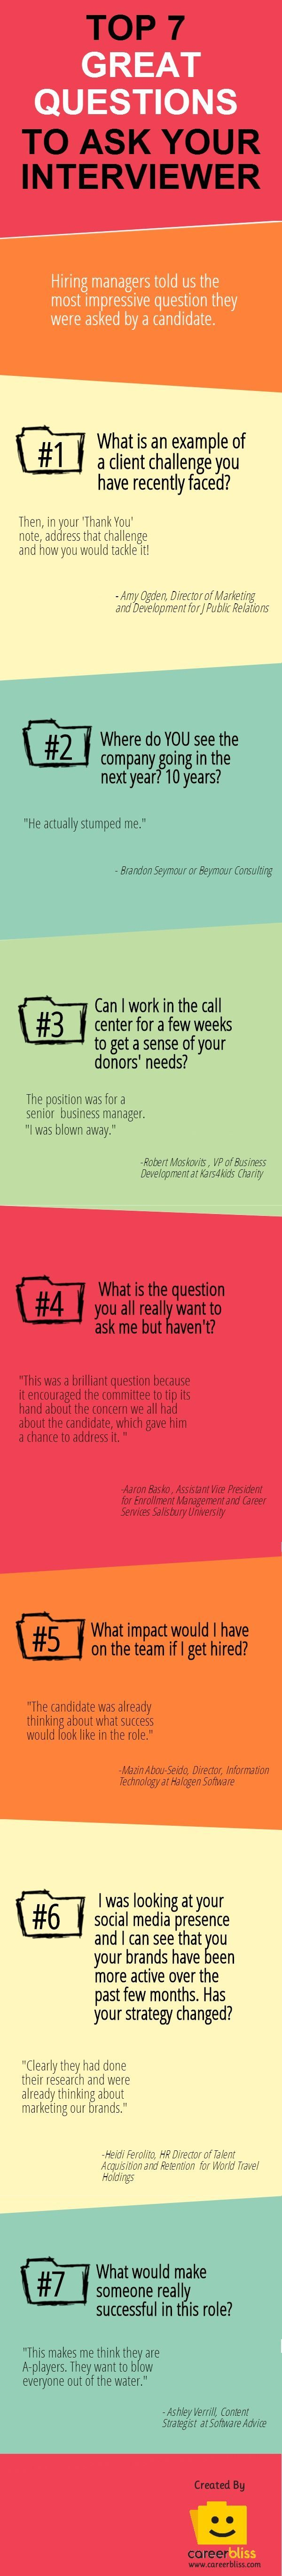 7 Great Questions To Ask In An Interview Resources This Or That Questions Job Interview Job Interview Tips